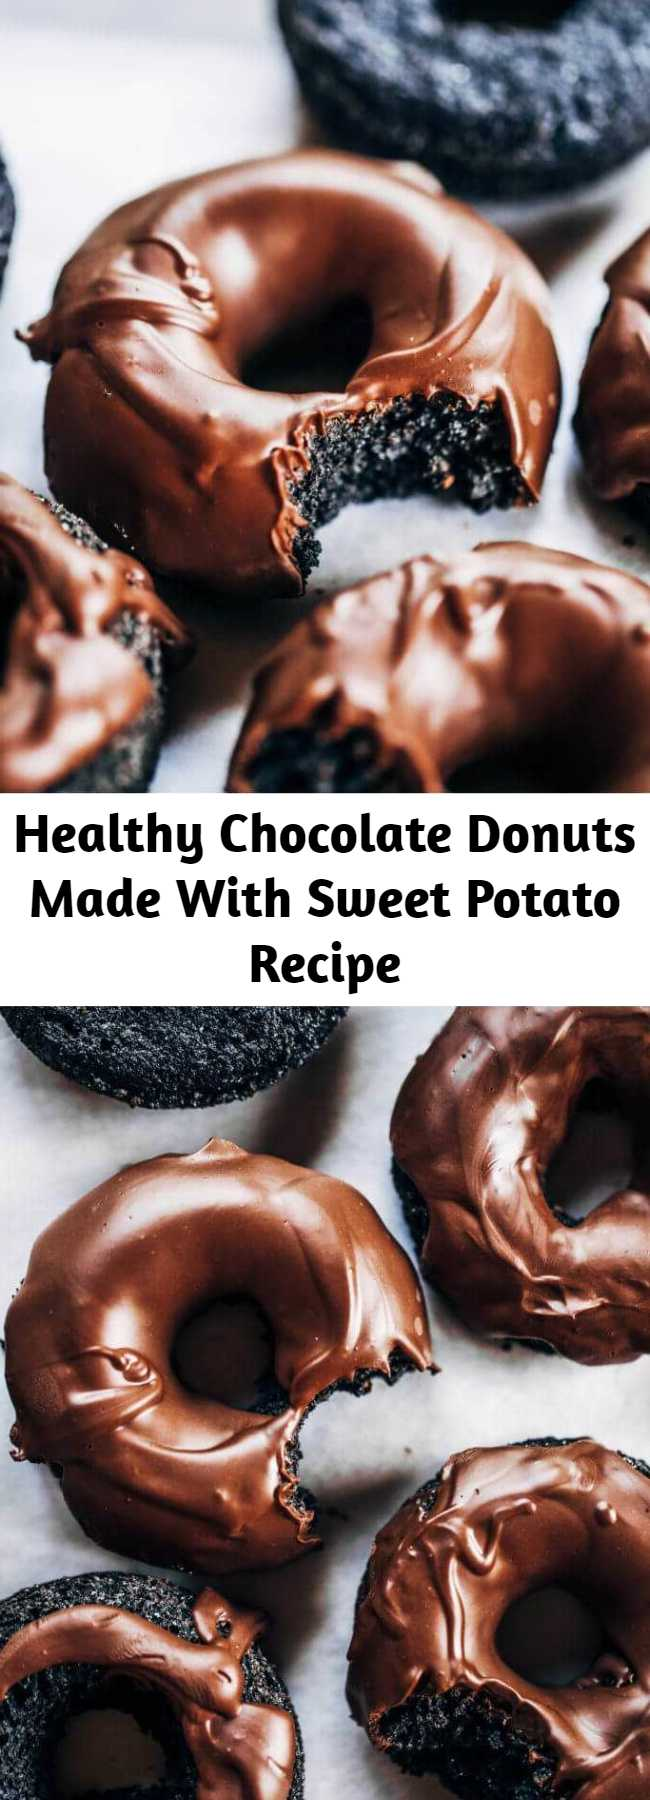 Healthy Chocolate Donuts Made With Sweet Potato Recipe - Healthy paleo chocolate glazed donuts made with sweet potato instead of flour! Easy baked donut recipe perfect for celebrations! #paleo #donuts #baking #recipes #cooking